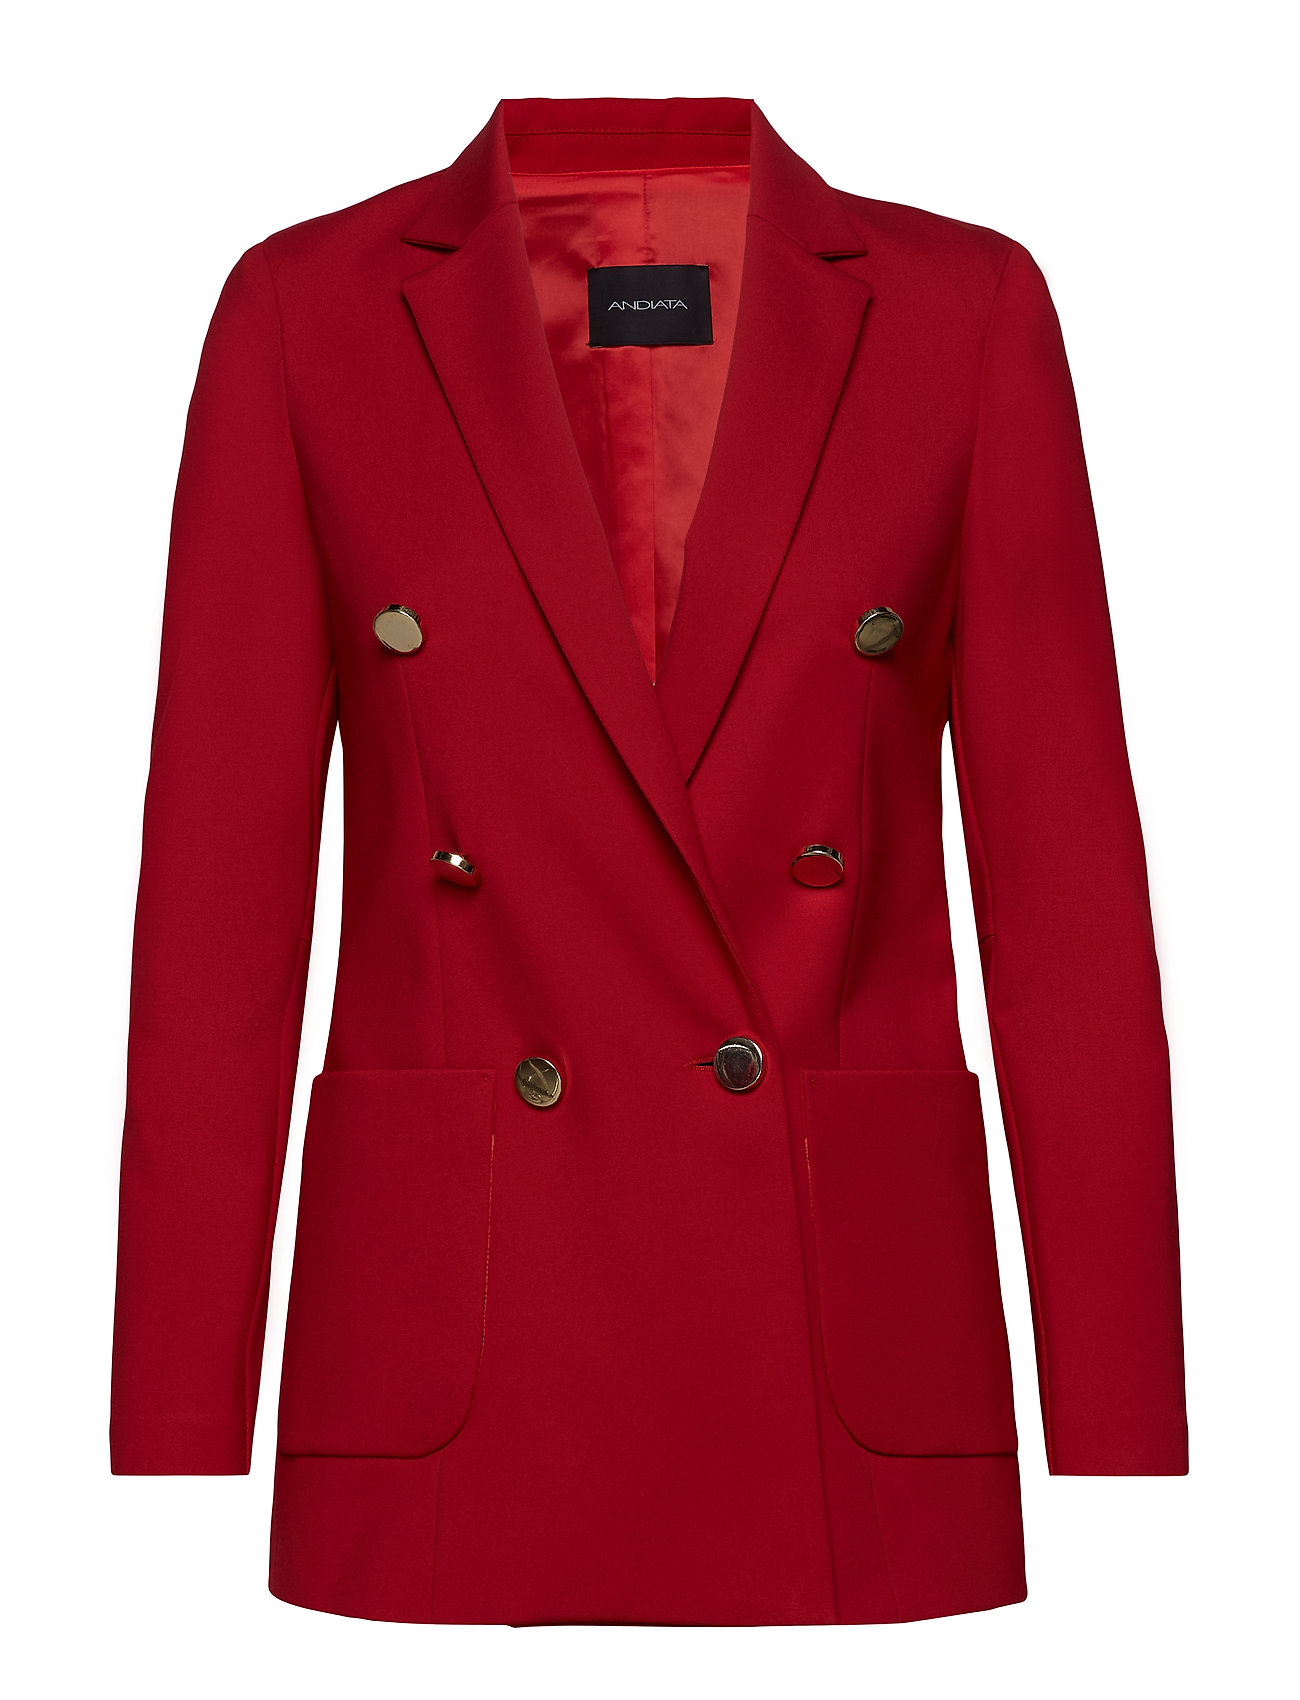 Andiata JENNER BLAZER - POPPY RED